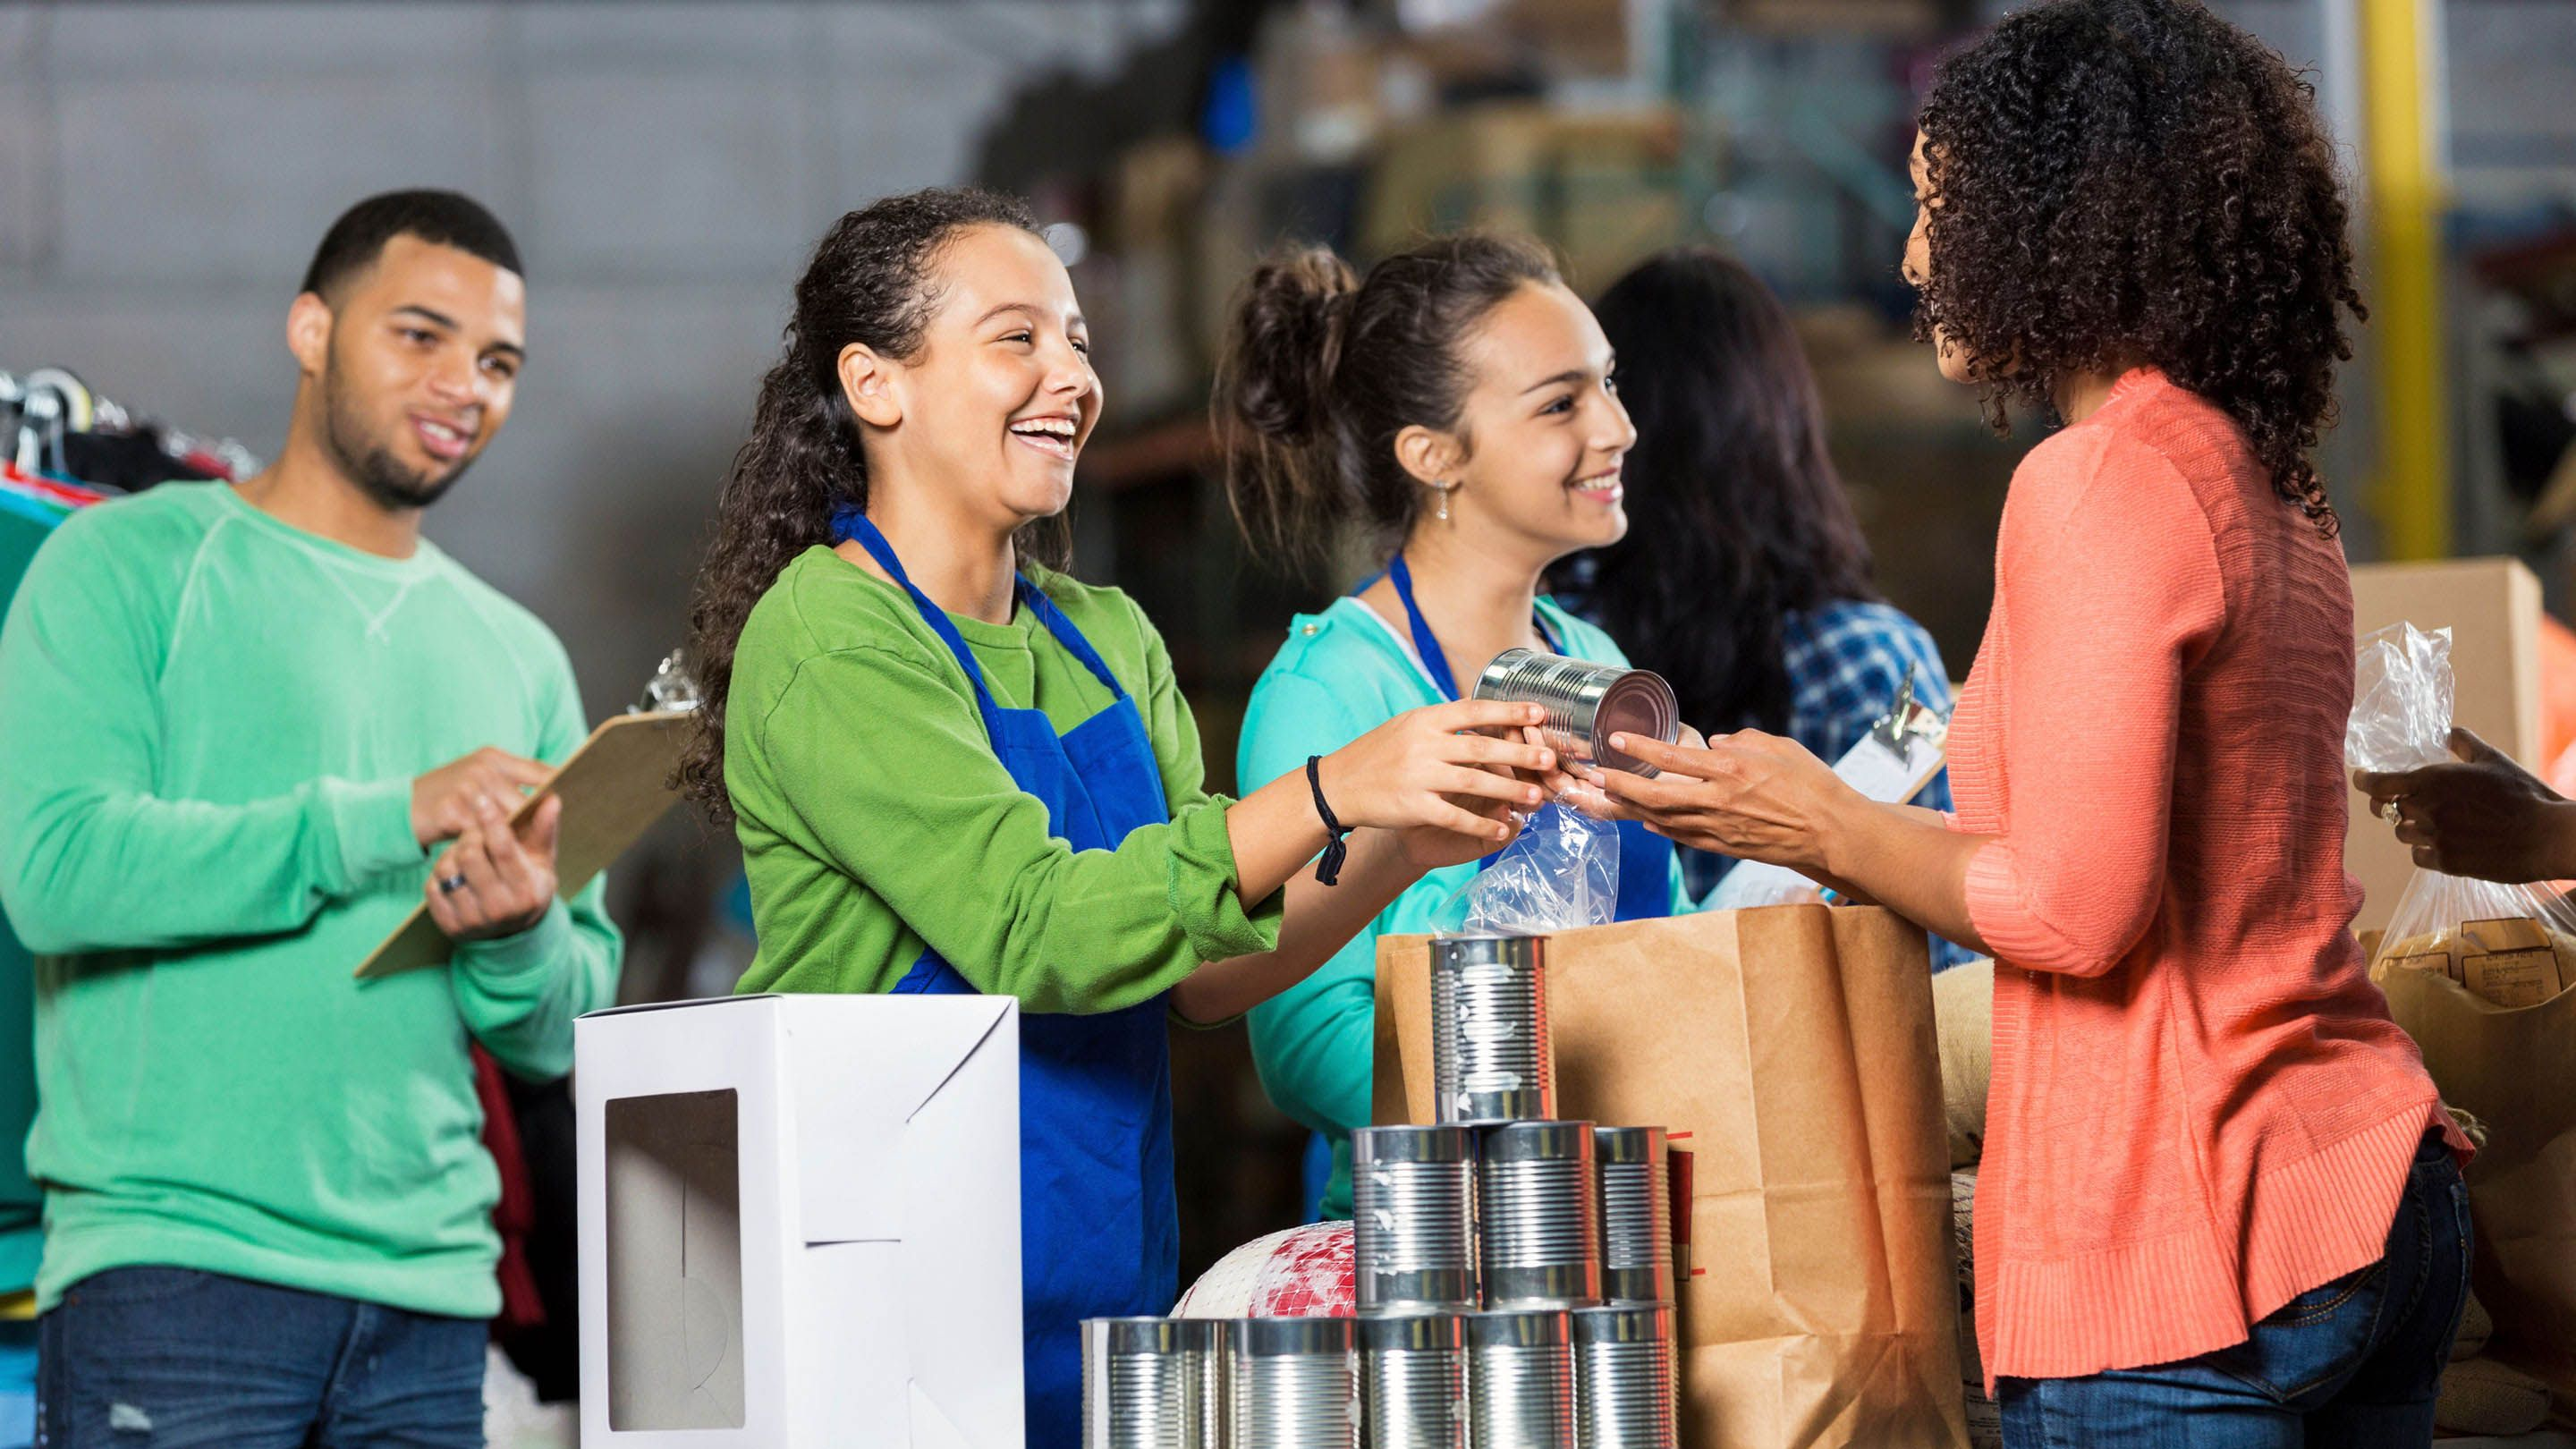 Three teenagers with one adult handing out canned foods to those in need.